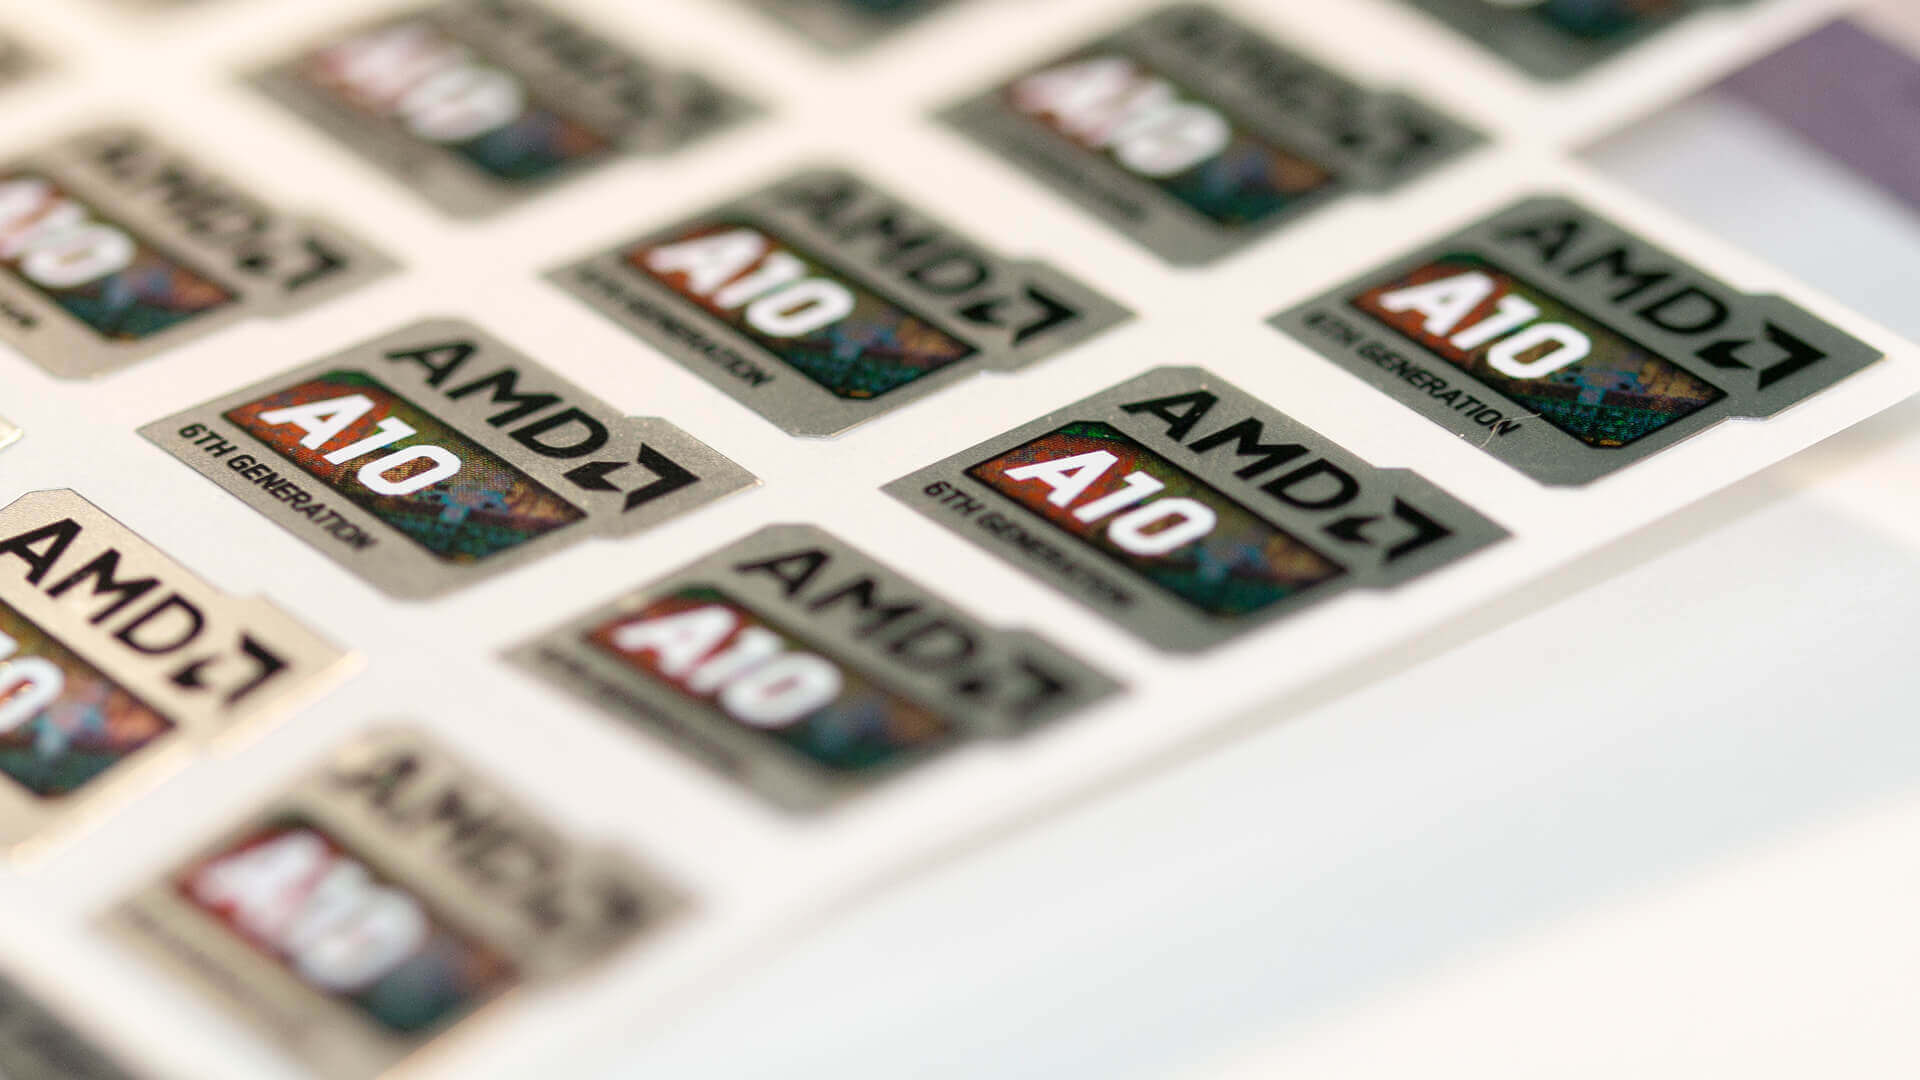 AMD Durable Laptop Labels